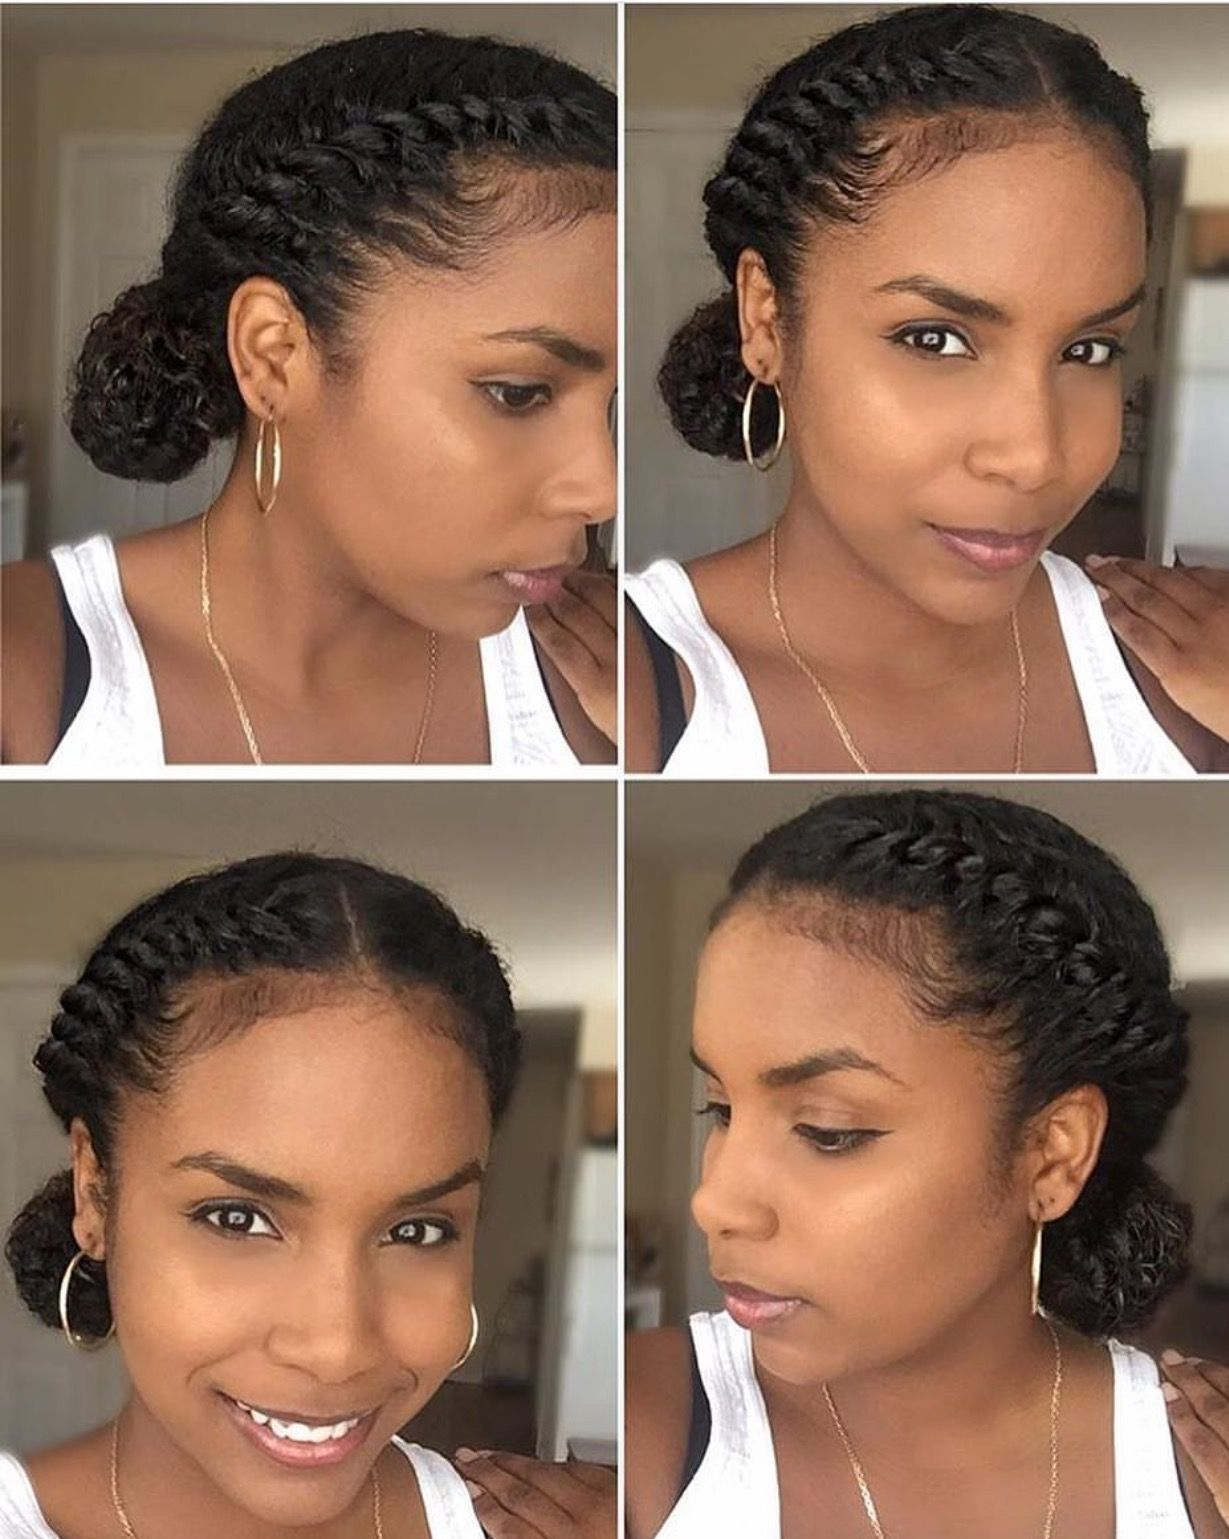 28 Top N A T U R A L H A I R Hair In 2019 Curly Hair In 2020 Natural Hair Styles Easy Protective Hairstyles For Natural Hair Natural Hair Styles For Black Women